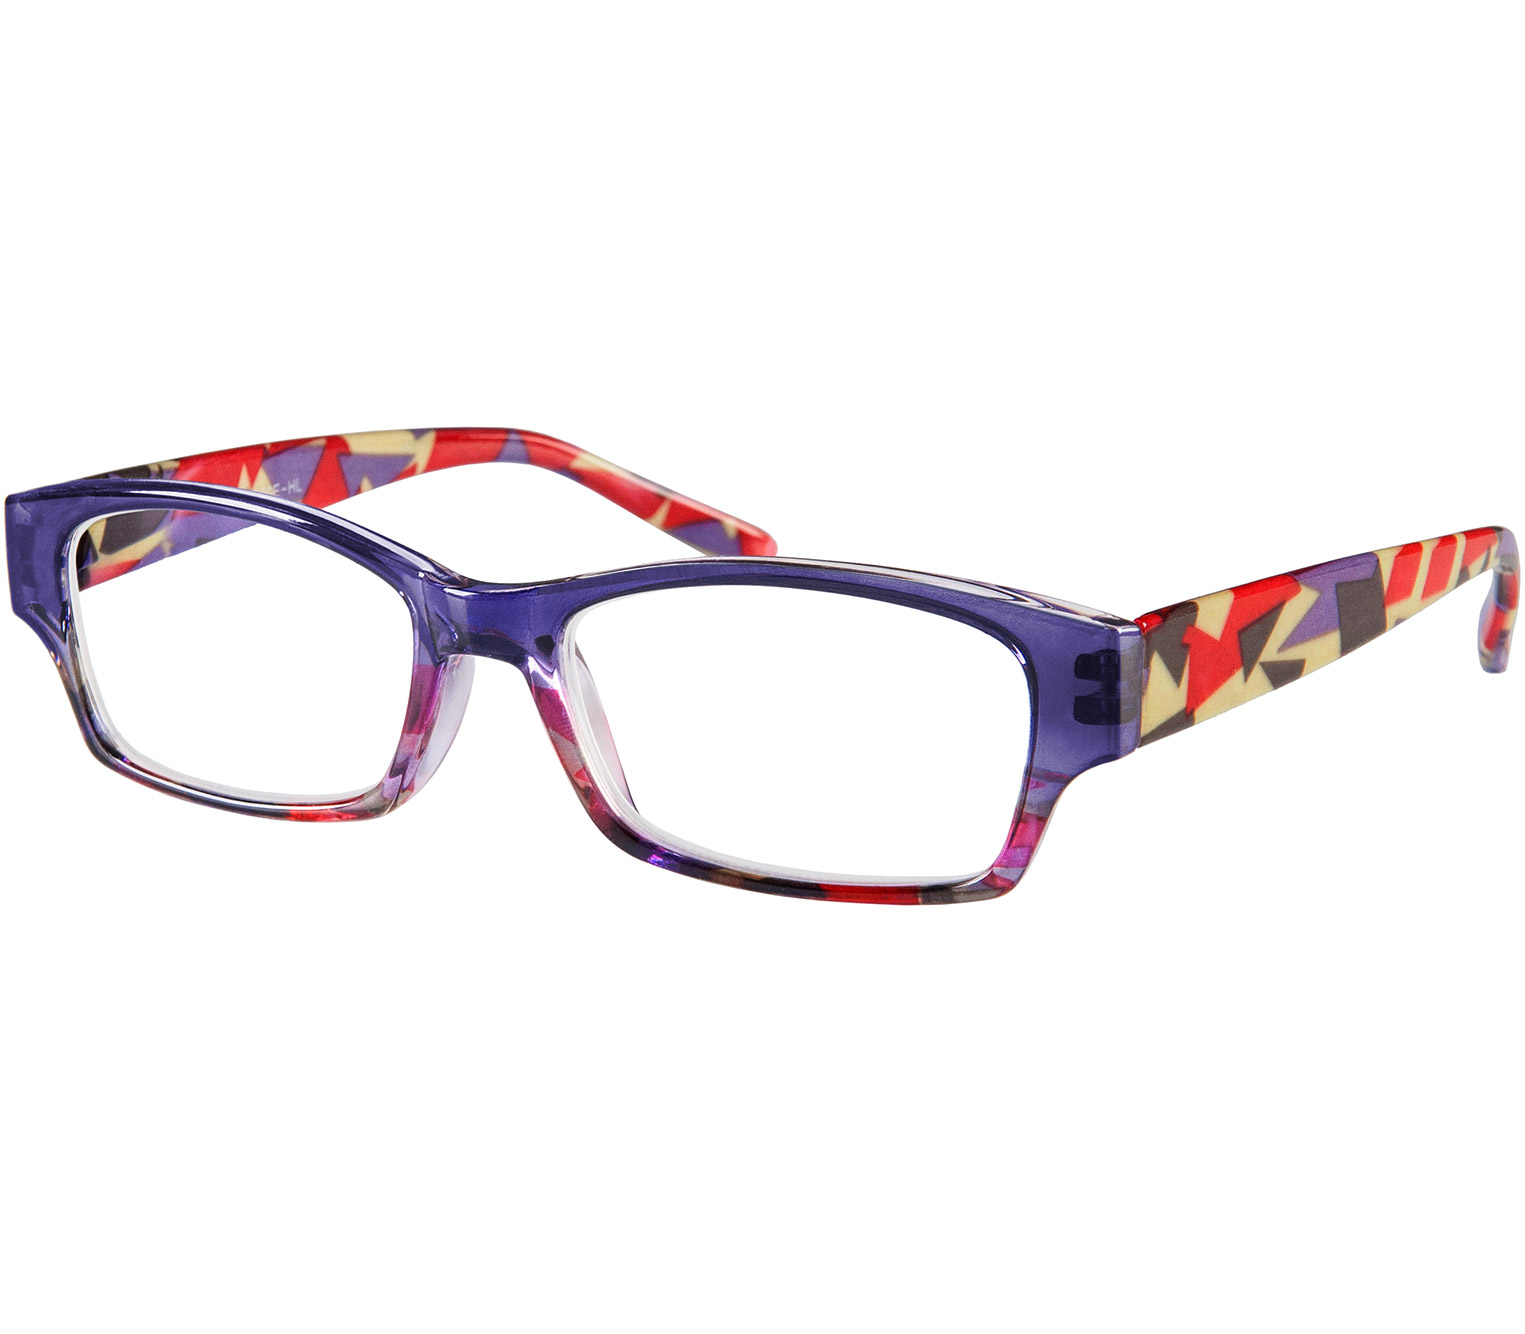 Main Image (Angle) - Mozaic (Purple) Fashion Reading Glasses